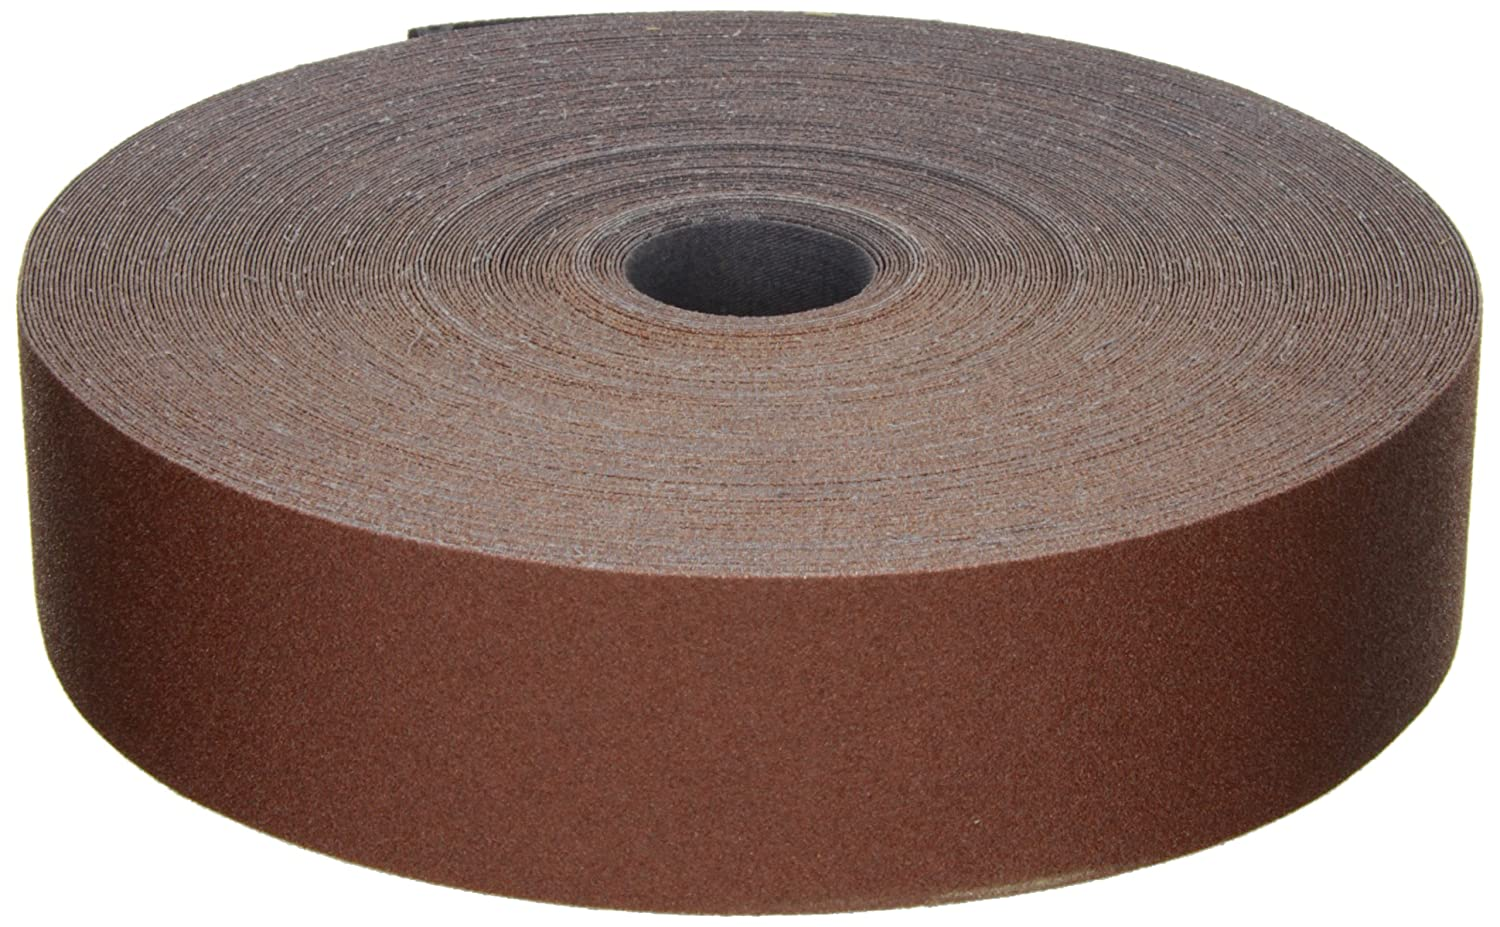 Aluminum Oxide Pack of 1 P80 Grit 2 Width x 50 yds Length Maroon 3M Utility Cloth Roll 314D